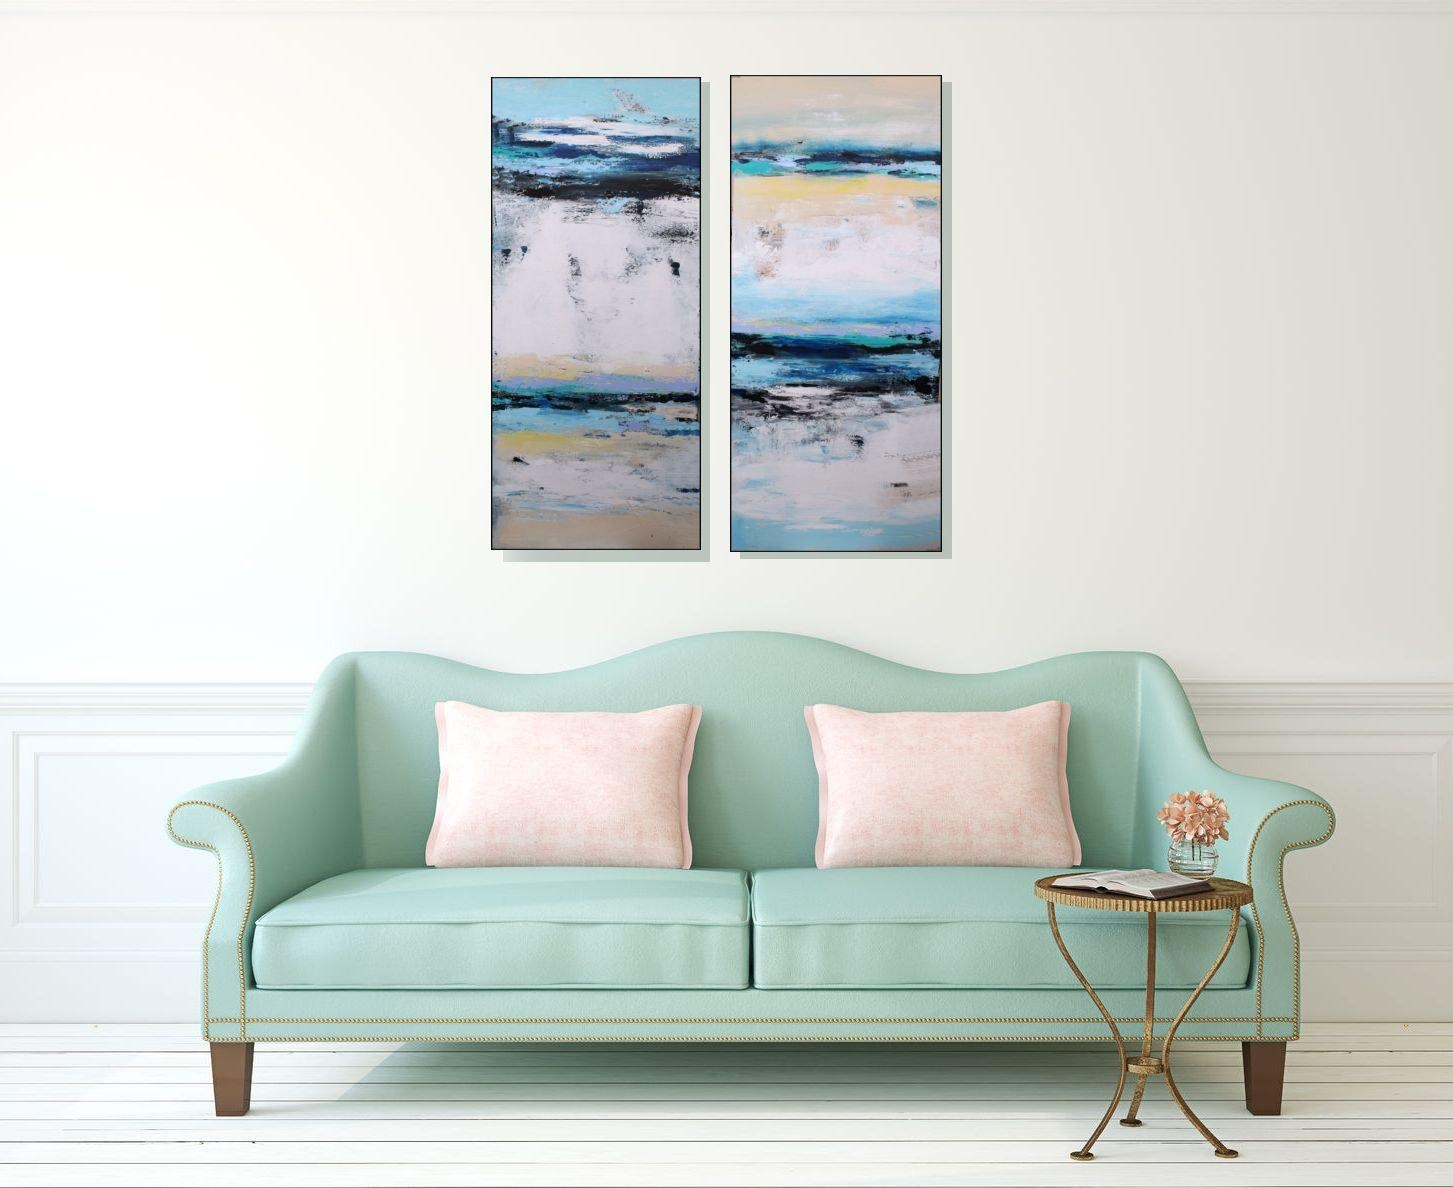 Large Abstract White And Blue Canvas Art Original Wall Art For Large White Wall Art (Image 9 of 21)